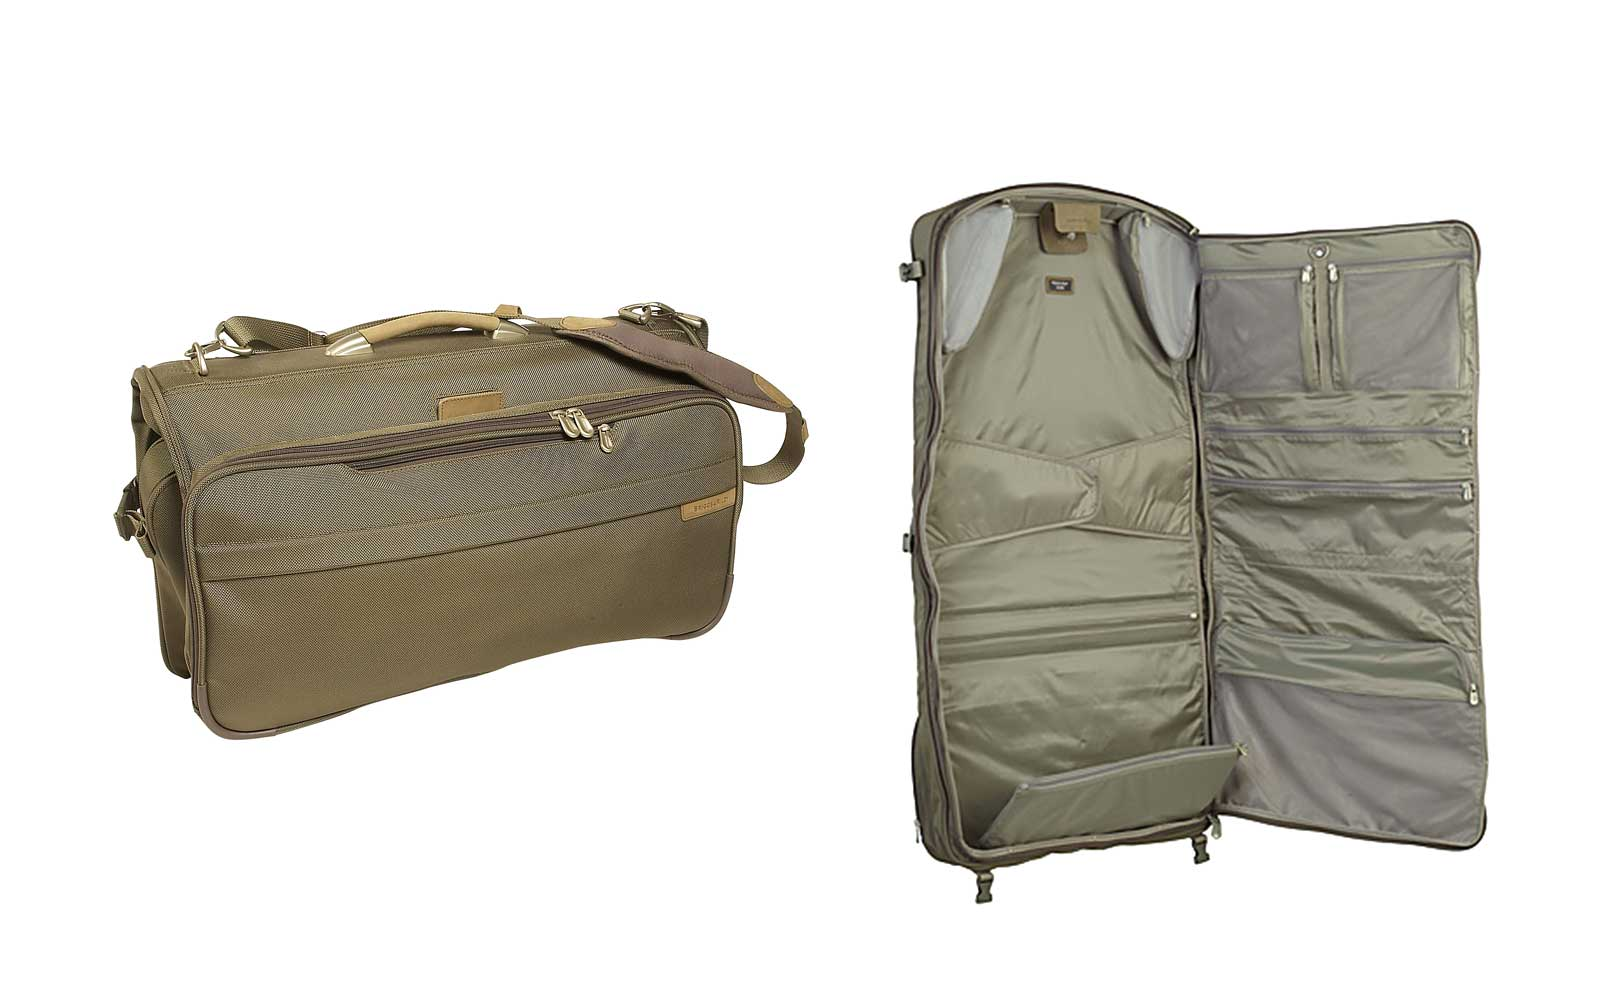 1538c9370 The Best Garment Bags for Travel | Travel + Leisure